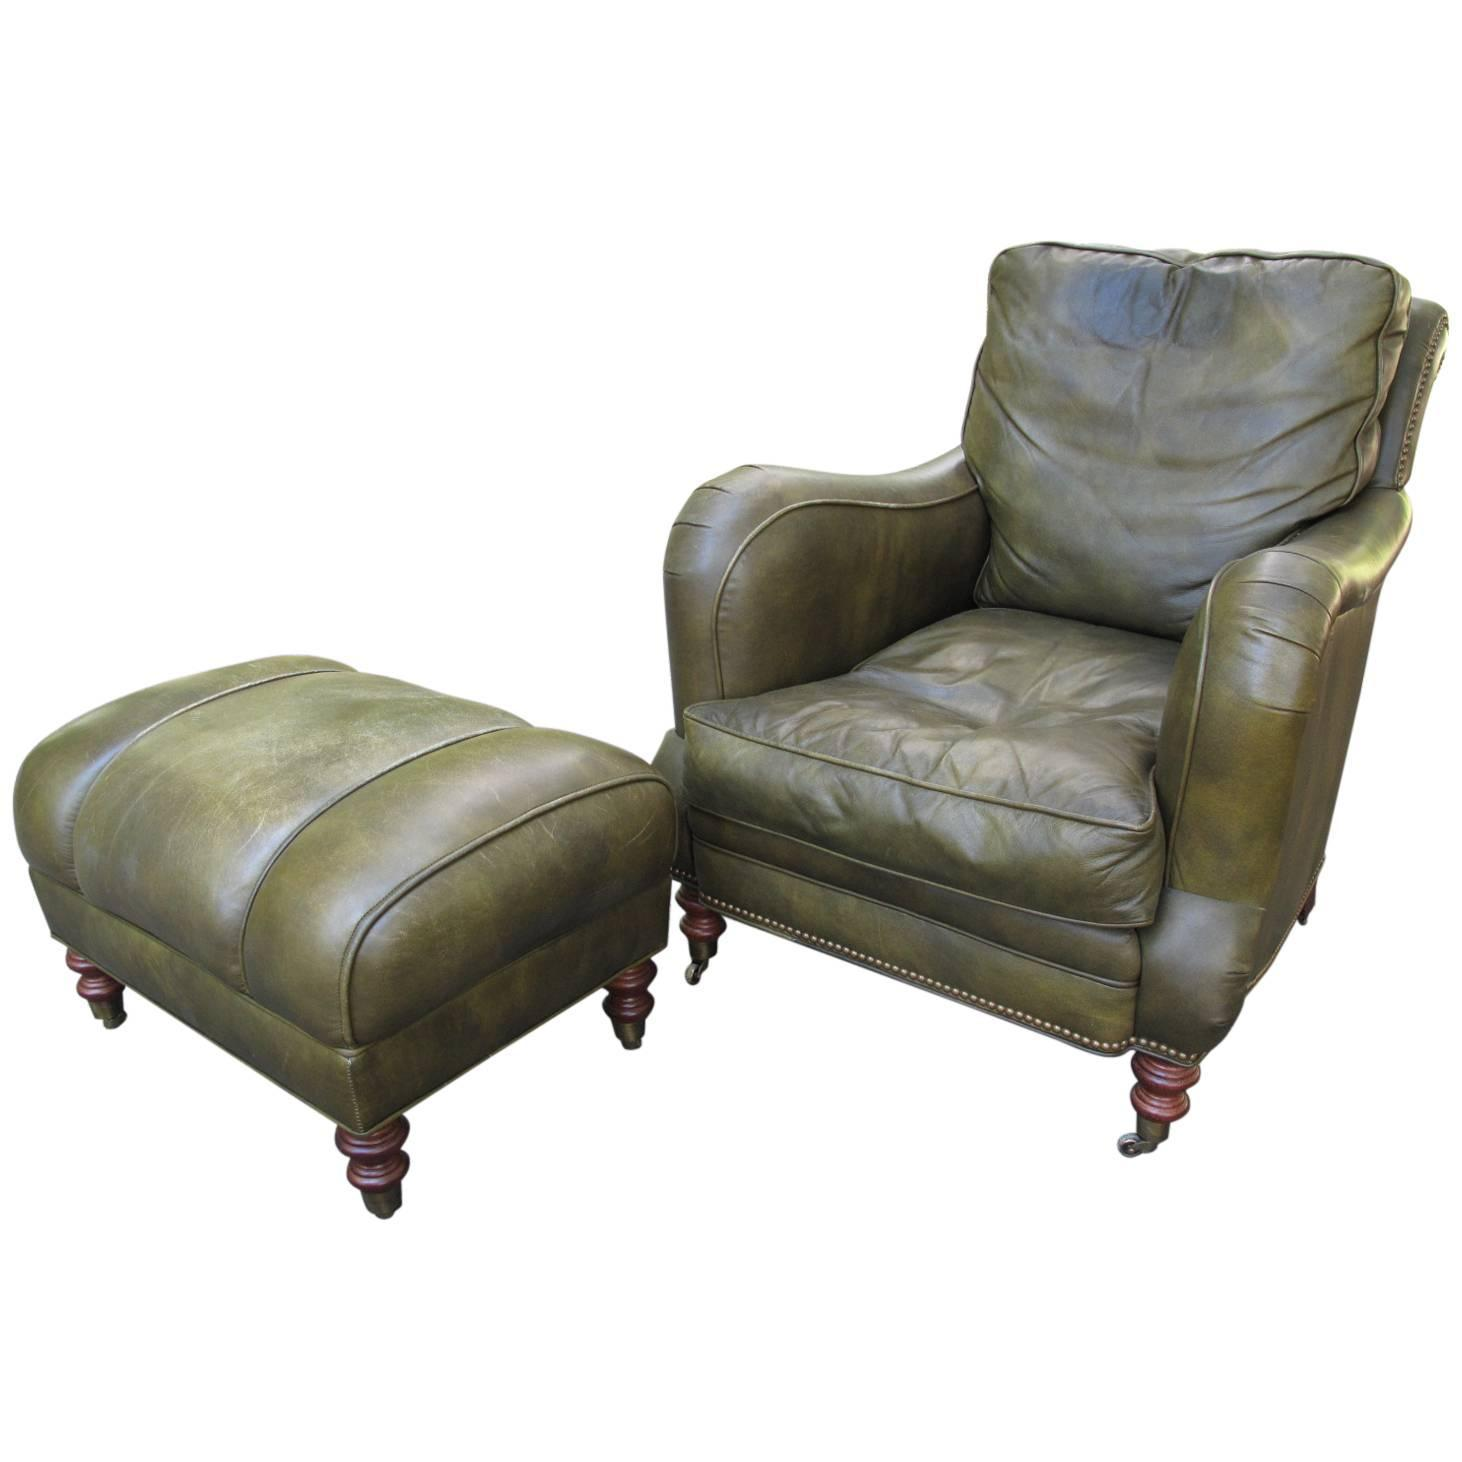 Leather Club Chair With Ottoman At 1stdibs